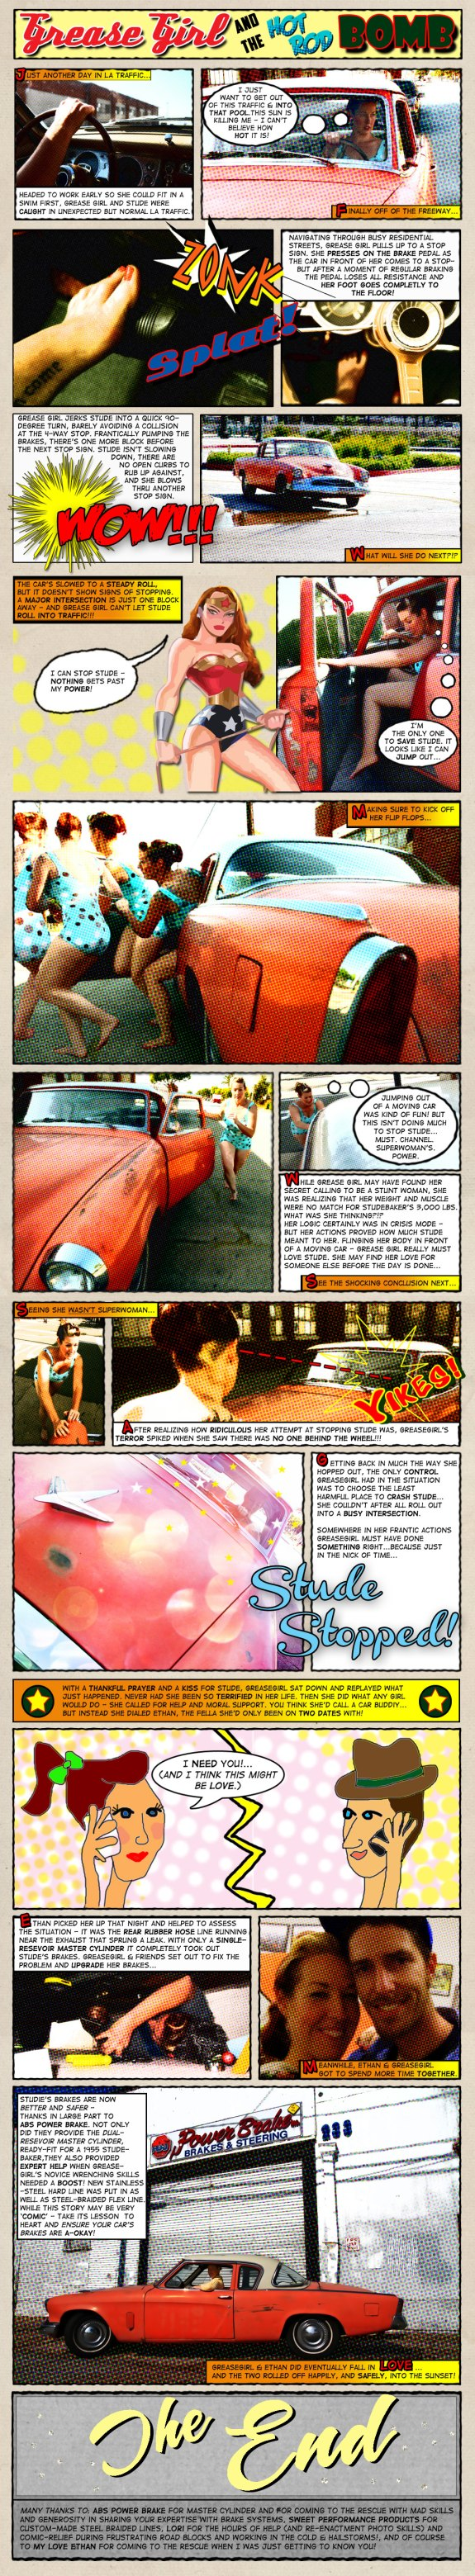 hot rod comic strip, hot rod art